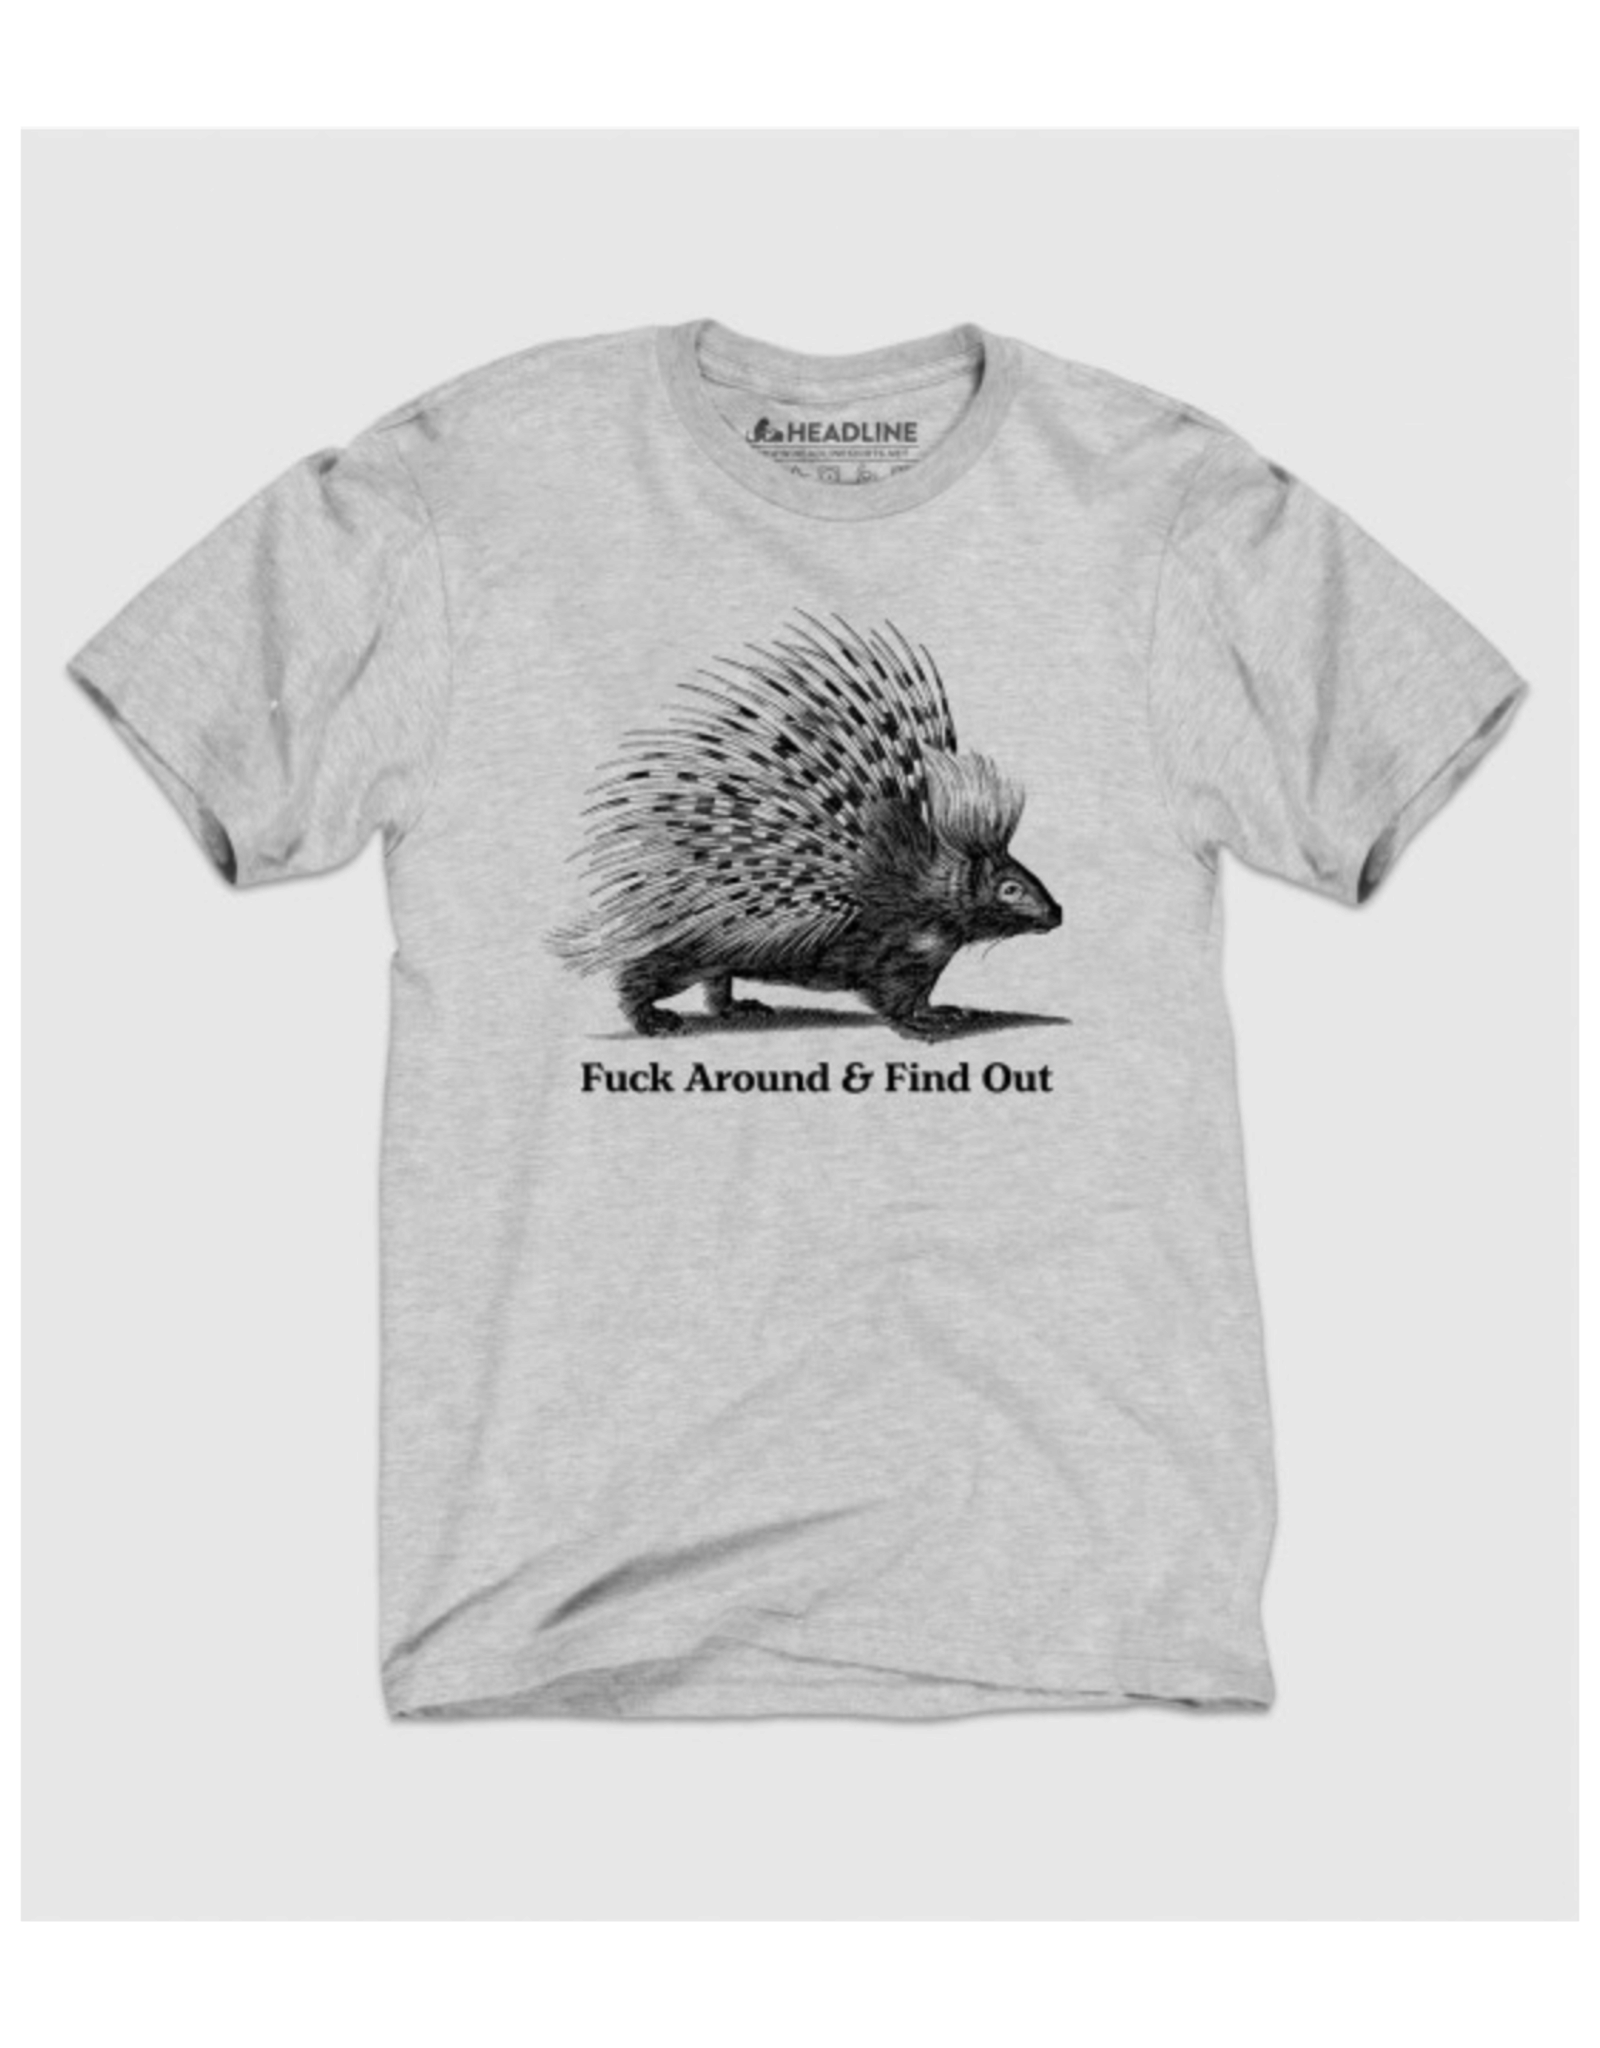 Fuck Around & Find Out Porcupine T-Shirt